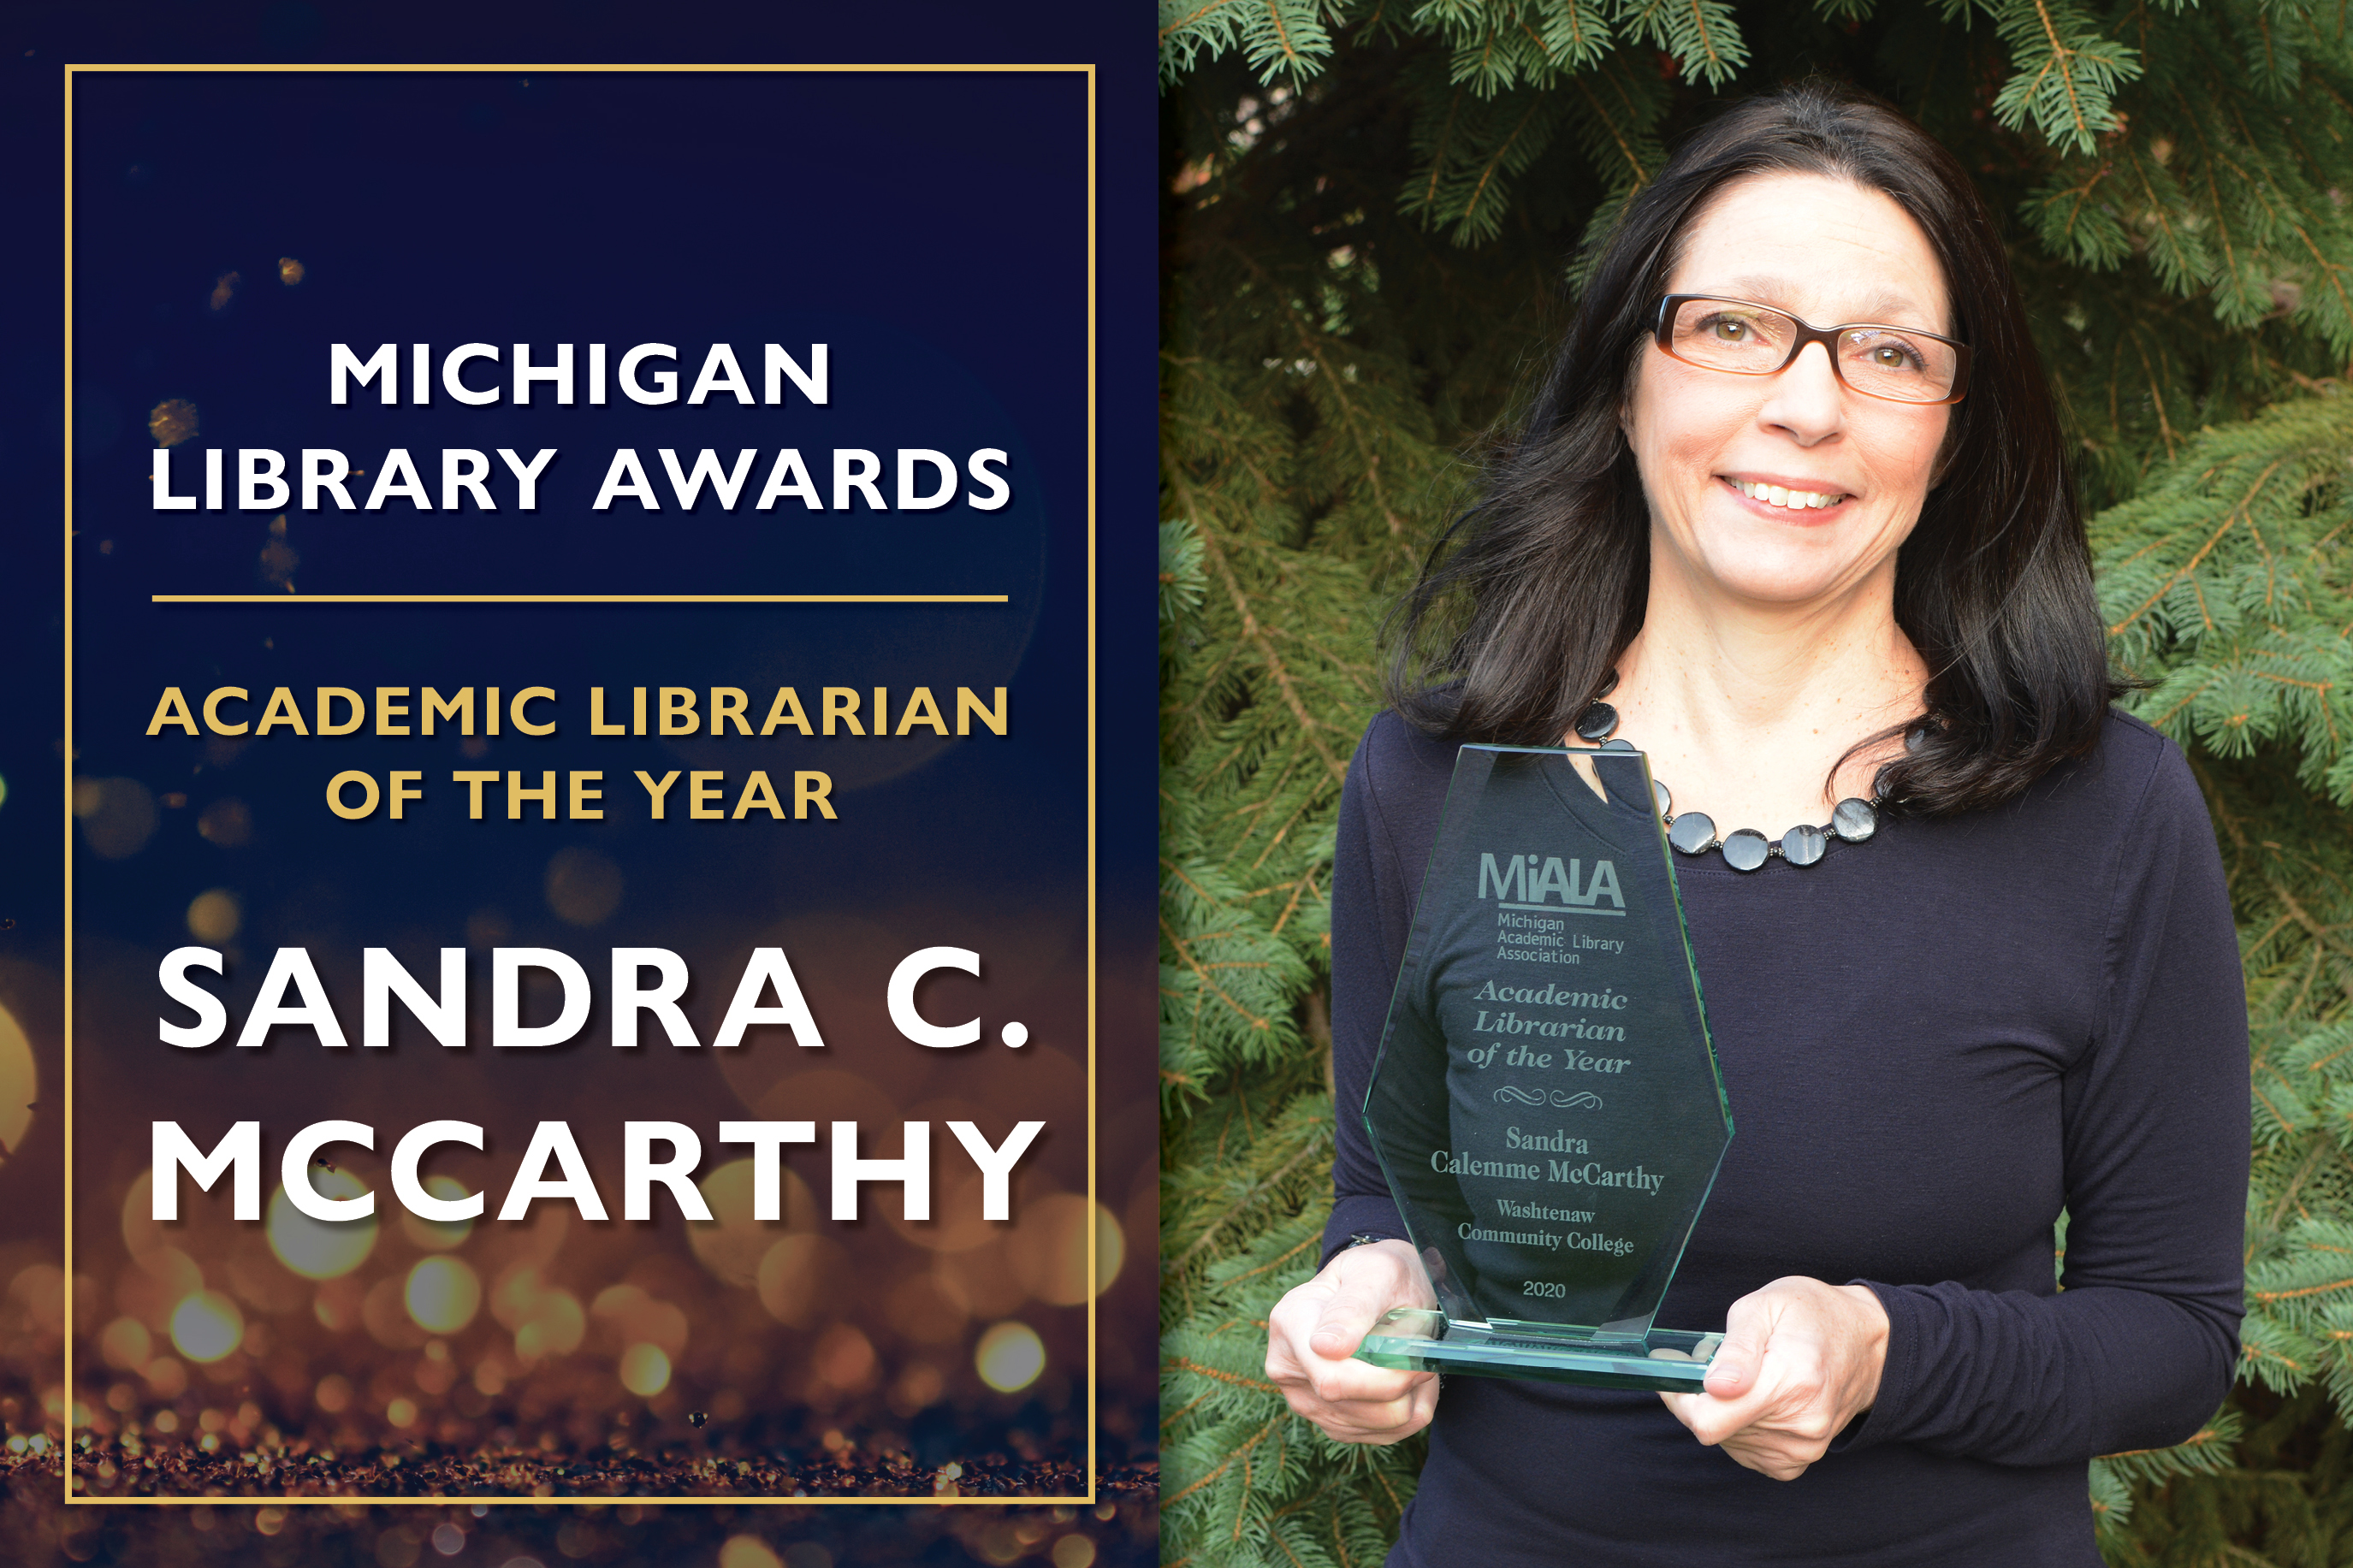 Academic Librarian of the Year  Sandra C. McCarthy, Professional Faculty and Librarian at the Bailey Library, Washtenaw Community College